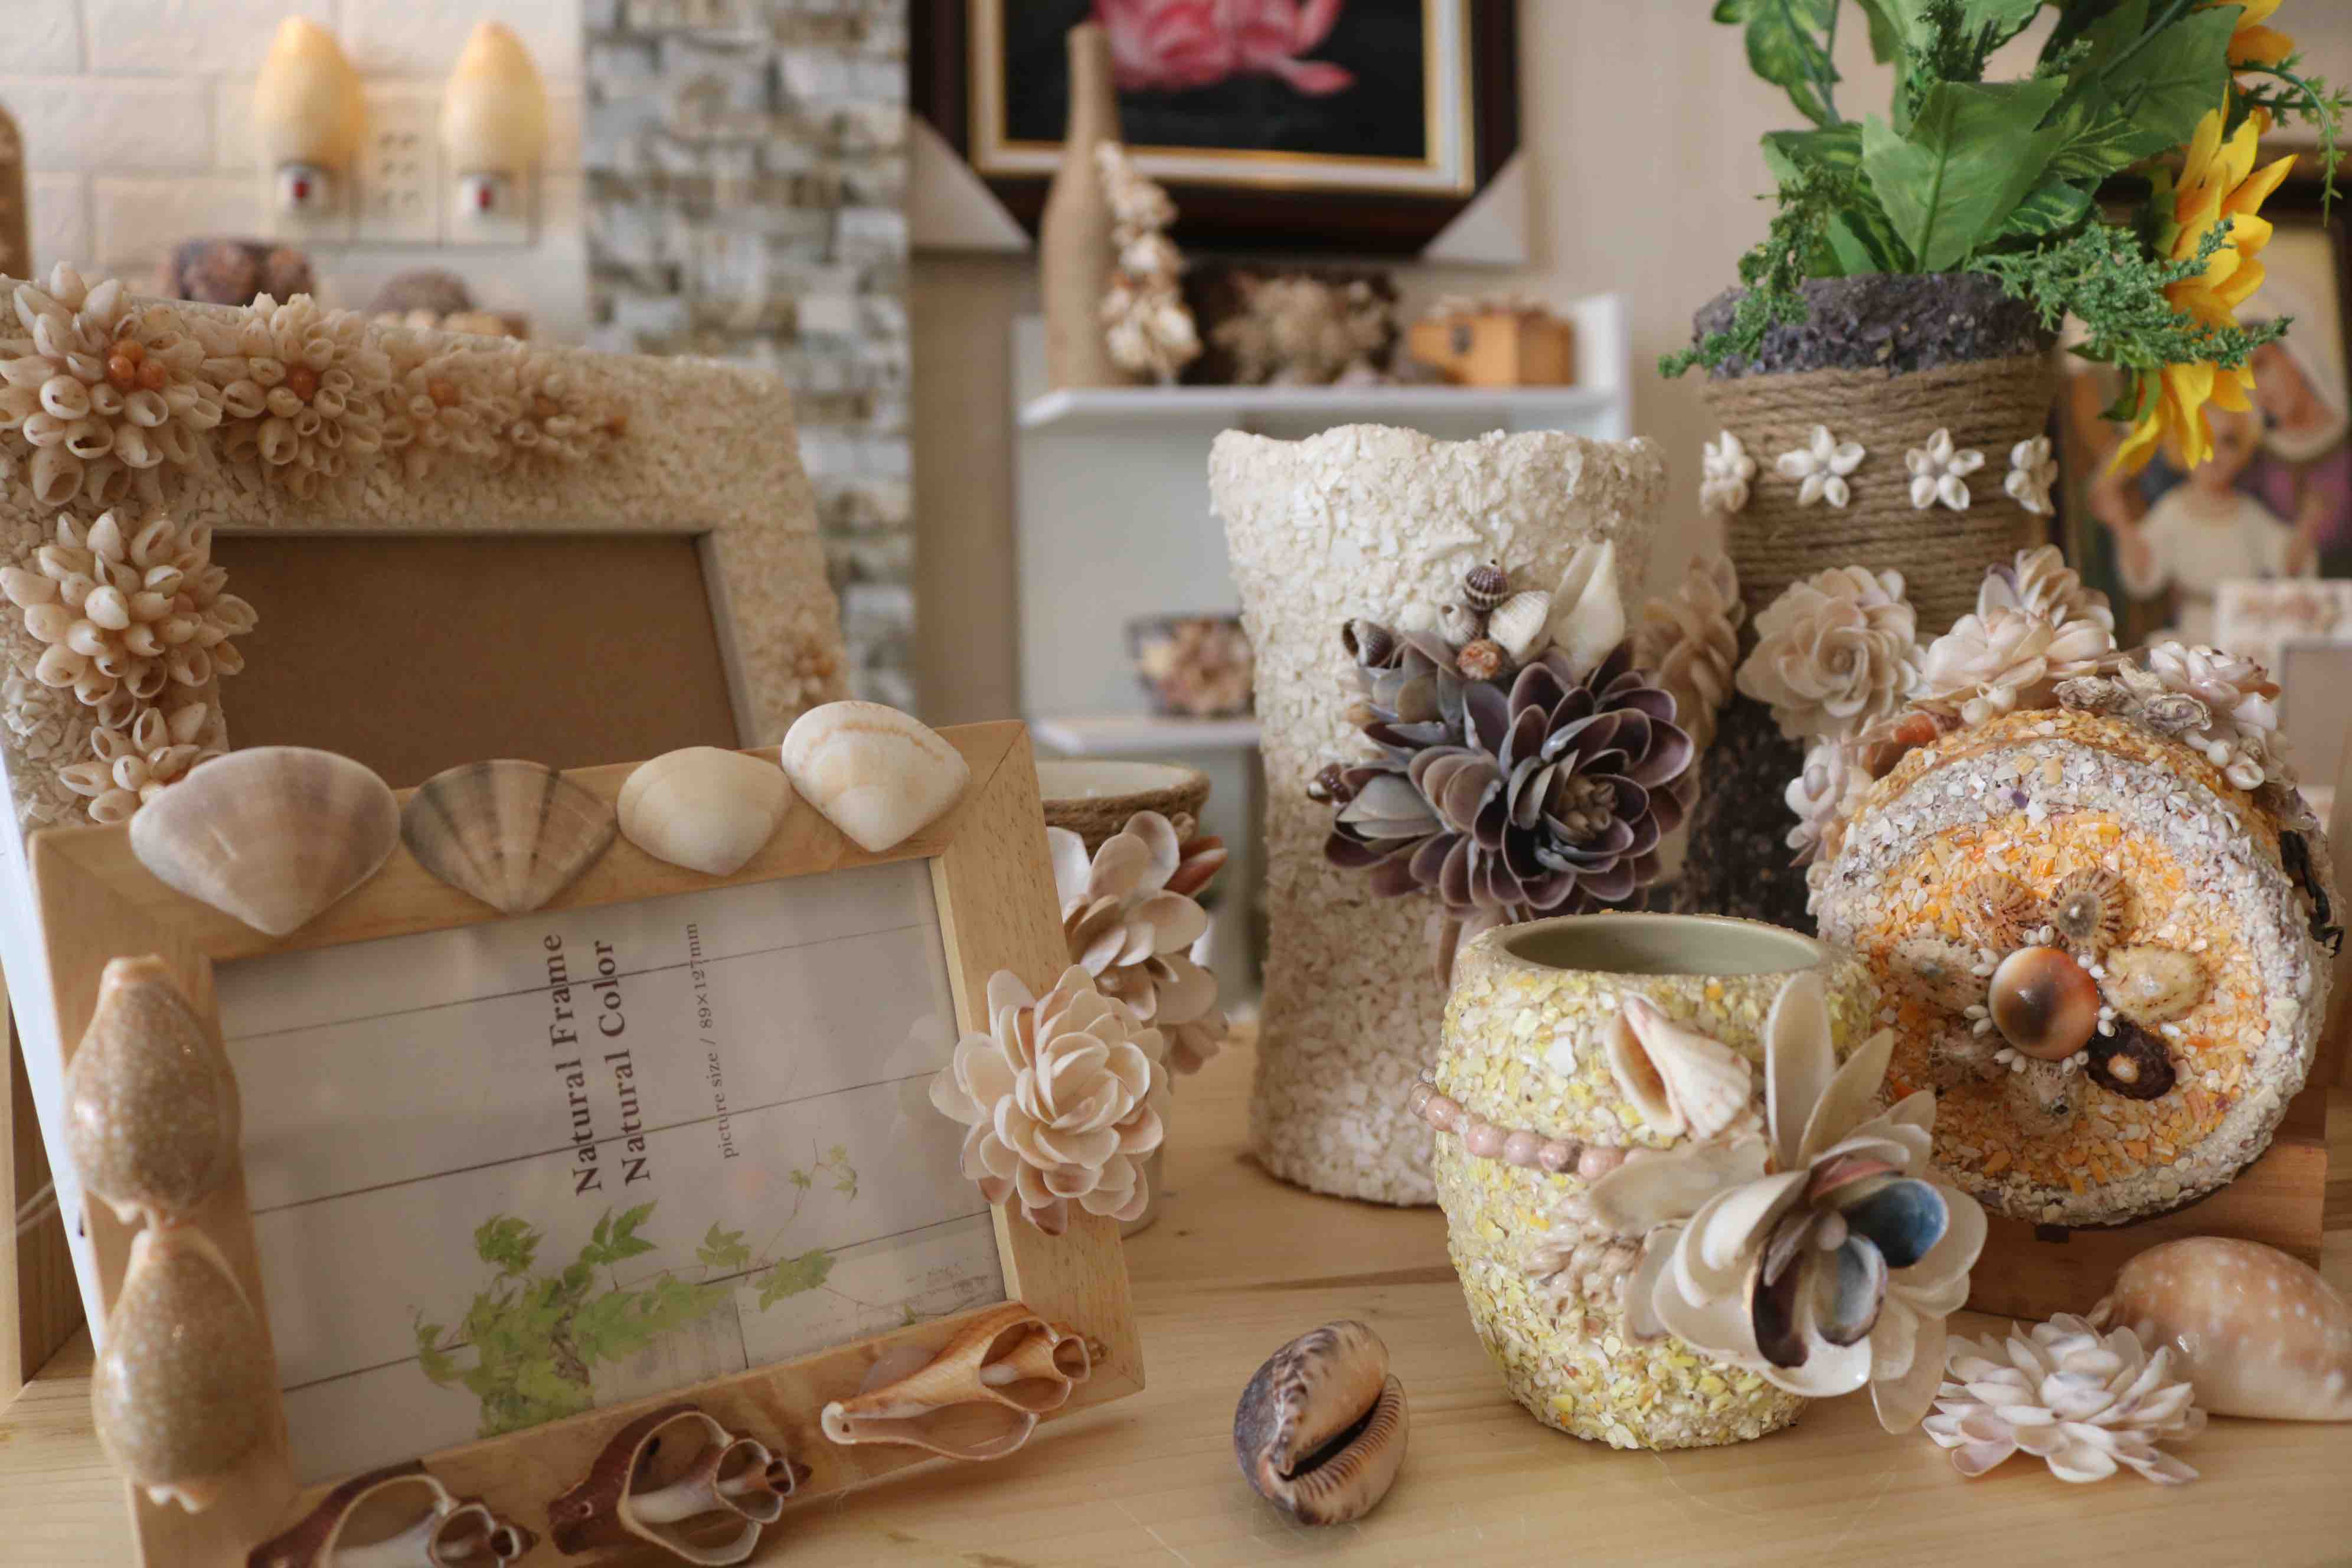 Picture frames and vases made from the shells are seen in this photo at Tran Thi Ngoc Hieu's showroom in District 1, Ho Chi Minh City. Photo: Hoang An / Tuoi Tre